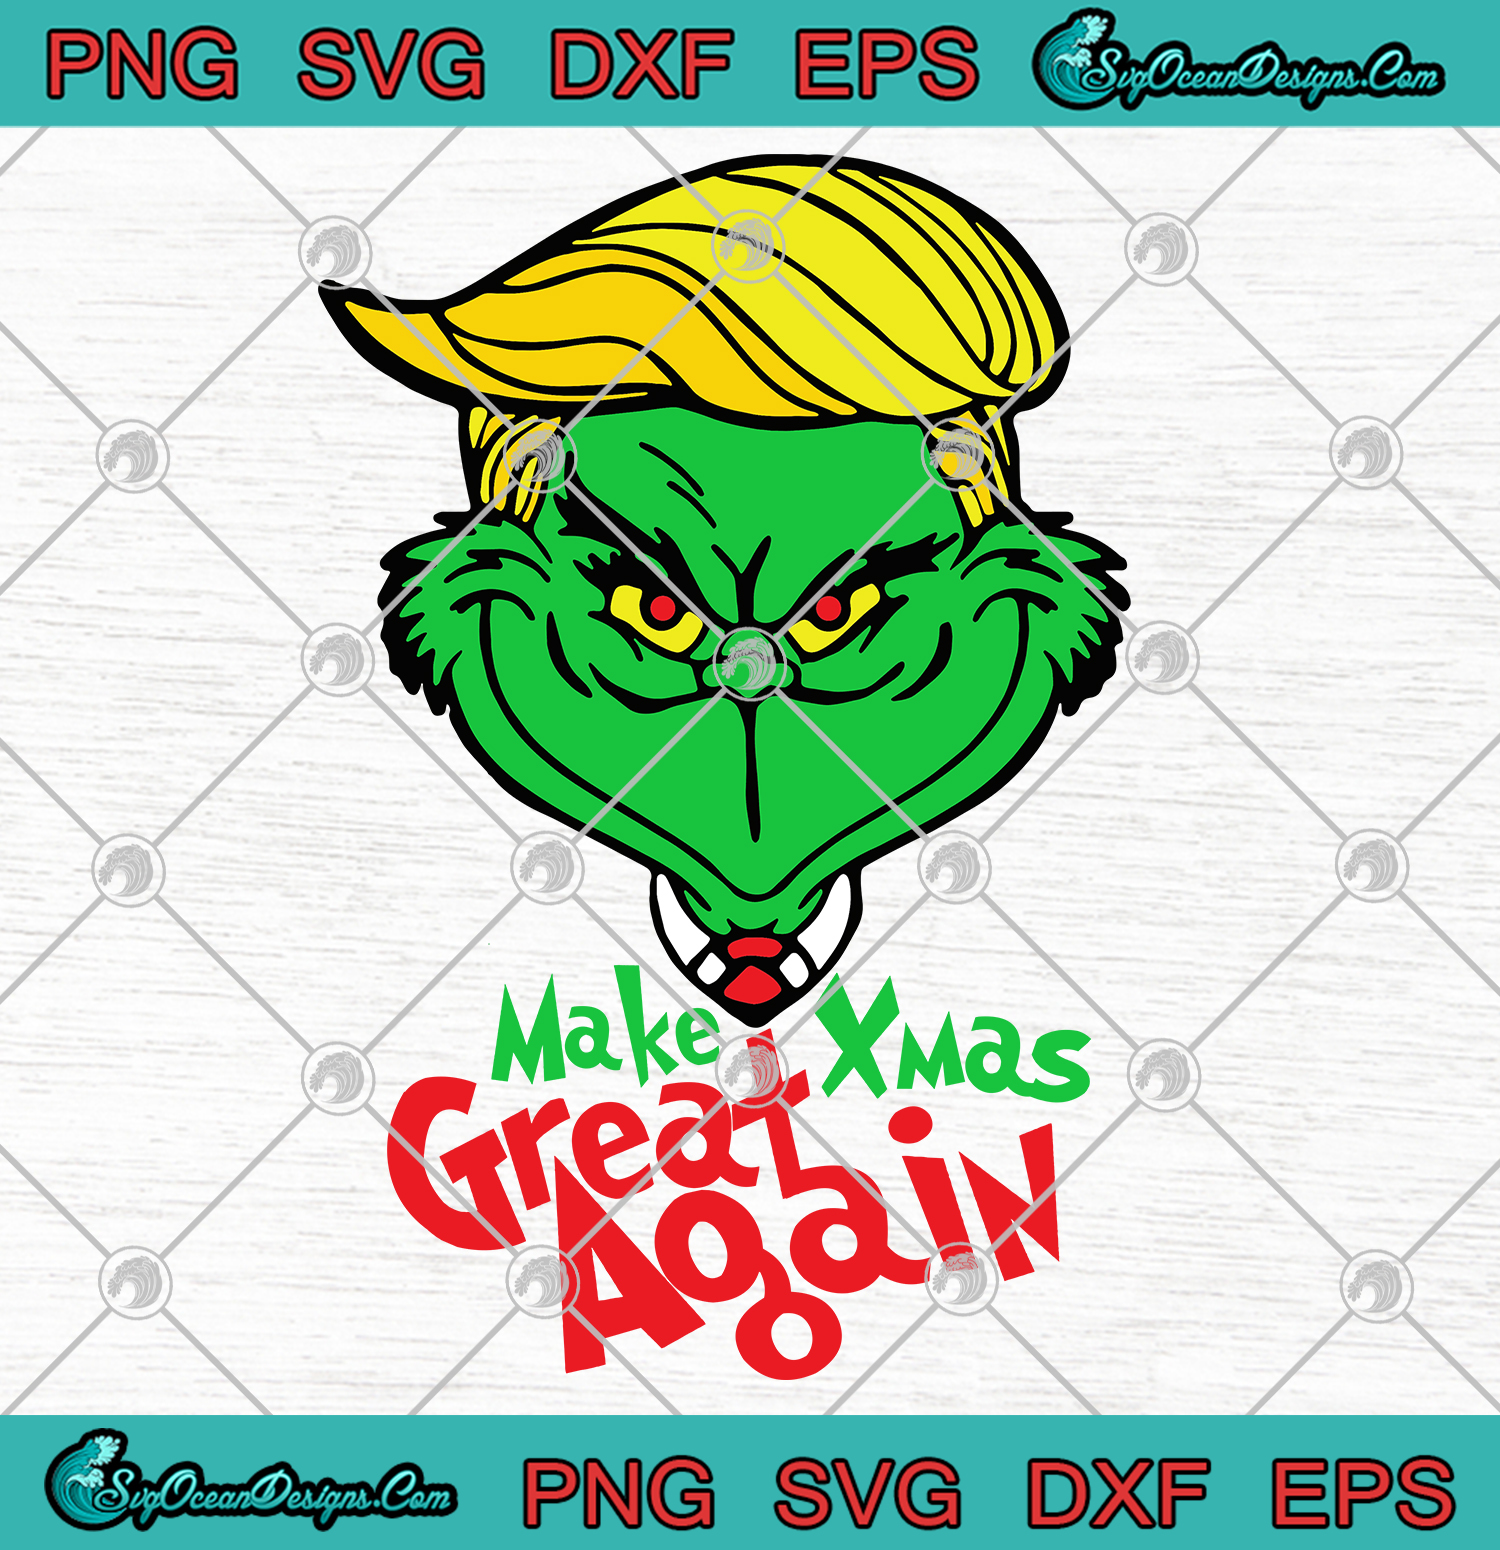 Trump Grinch Make Xmas Great Again Svg Png Eps Dxf Cricut Silhouette Cameo Svg Designs Digital Download